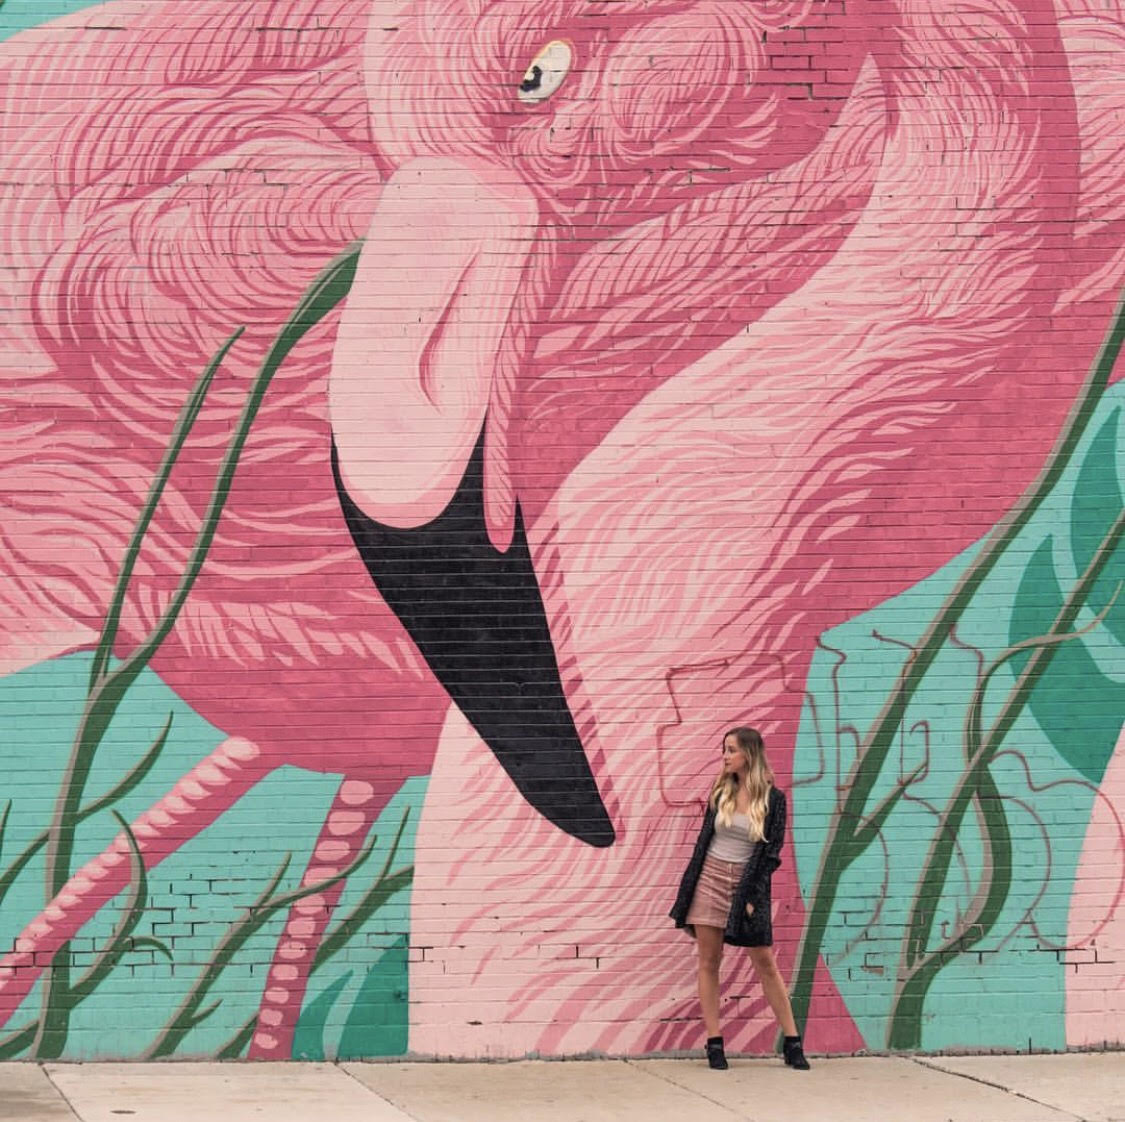 Flamingo Wall in Chicago